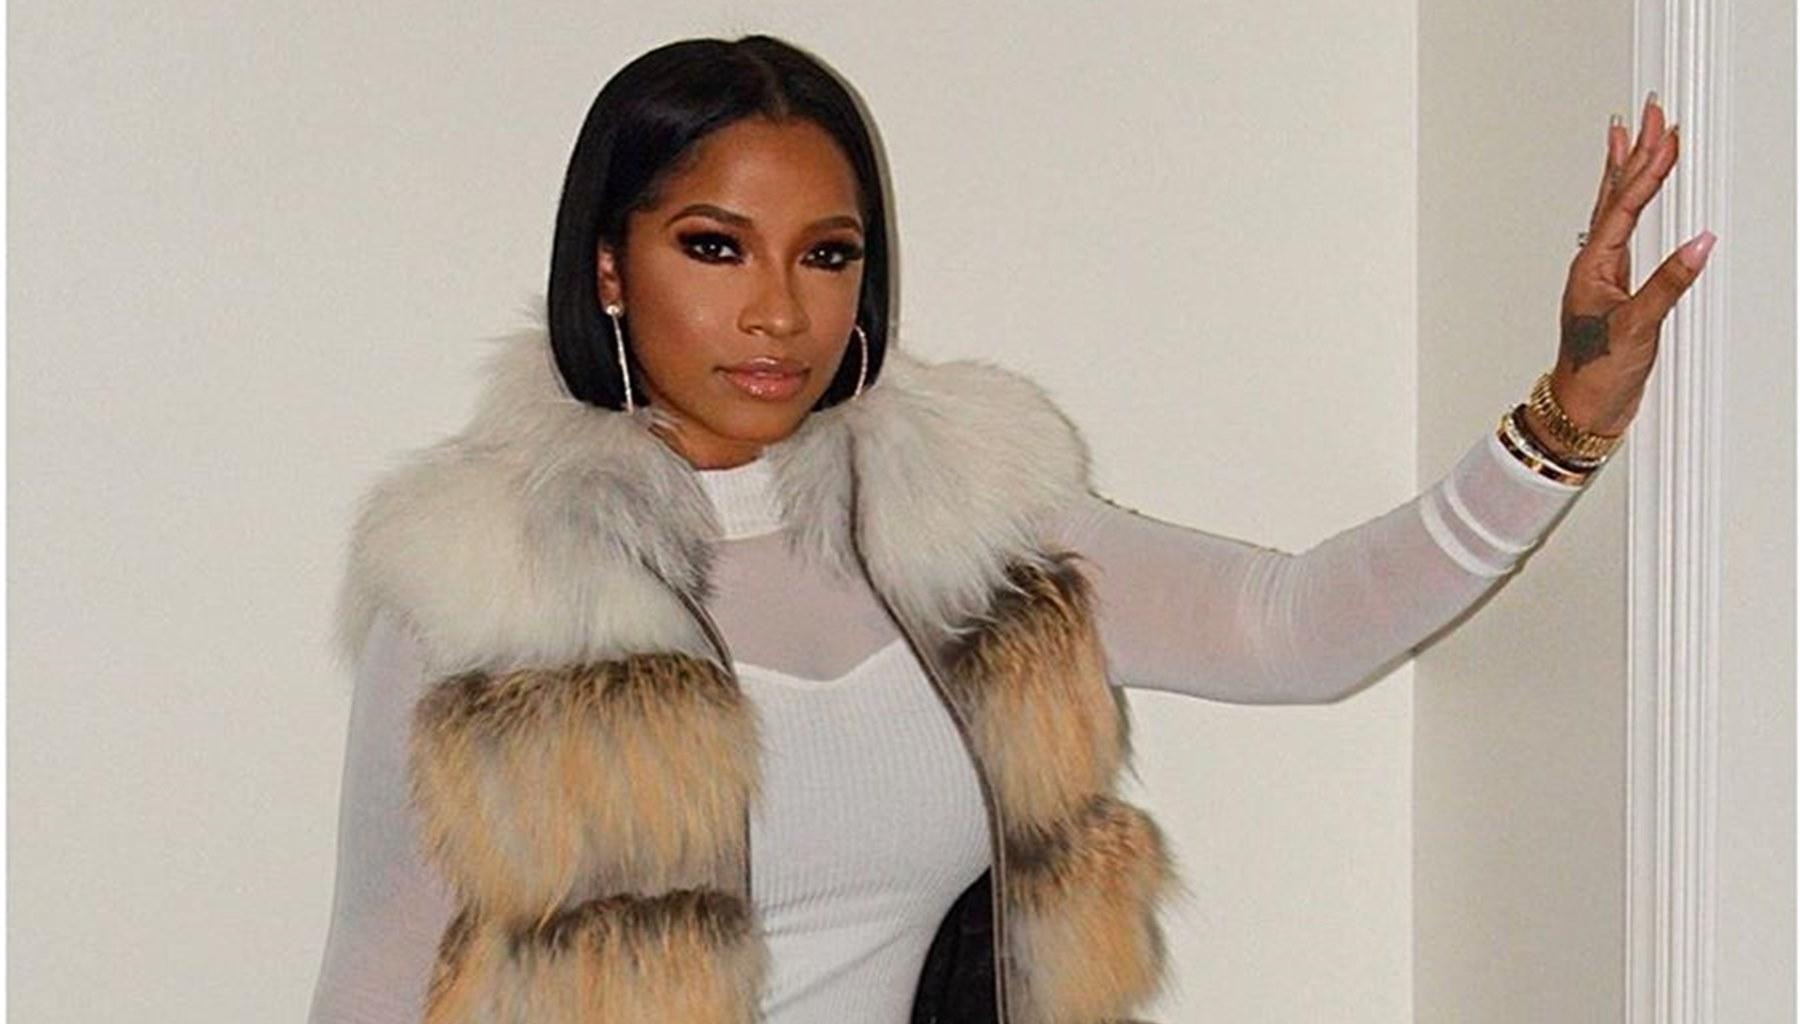 Toya Wright's Wedding Plan Announcement Is Derailed By Woman Who Made Wild Accusations Against Robert Rushing